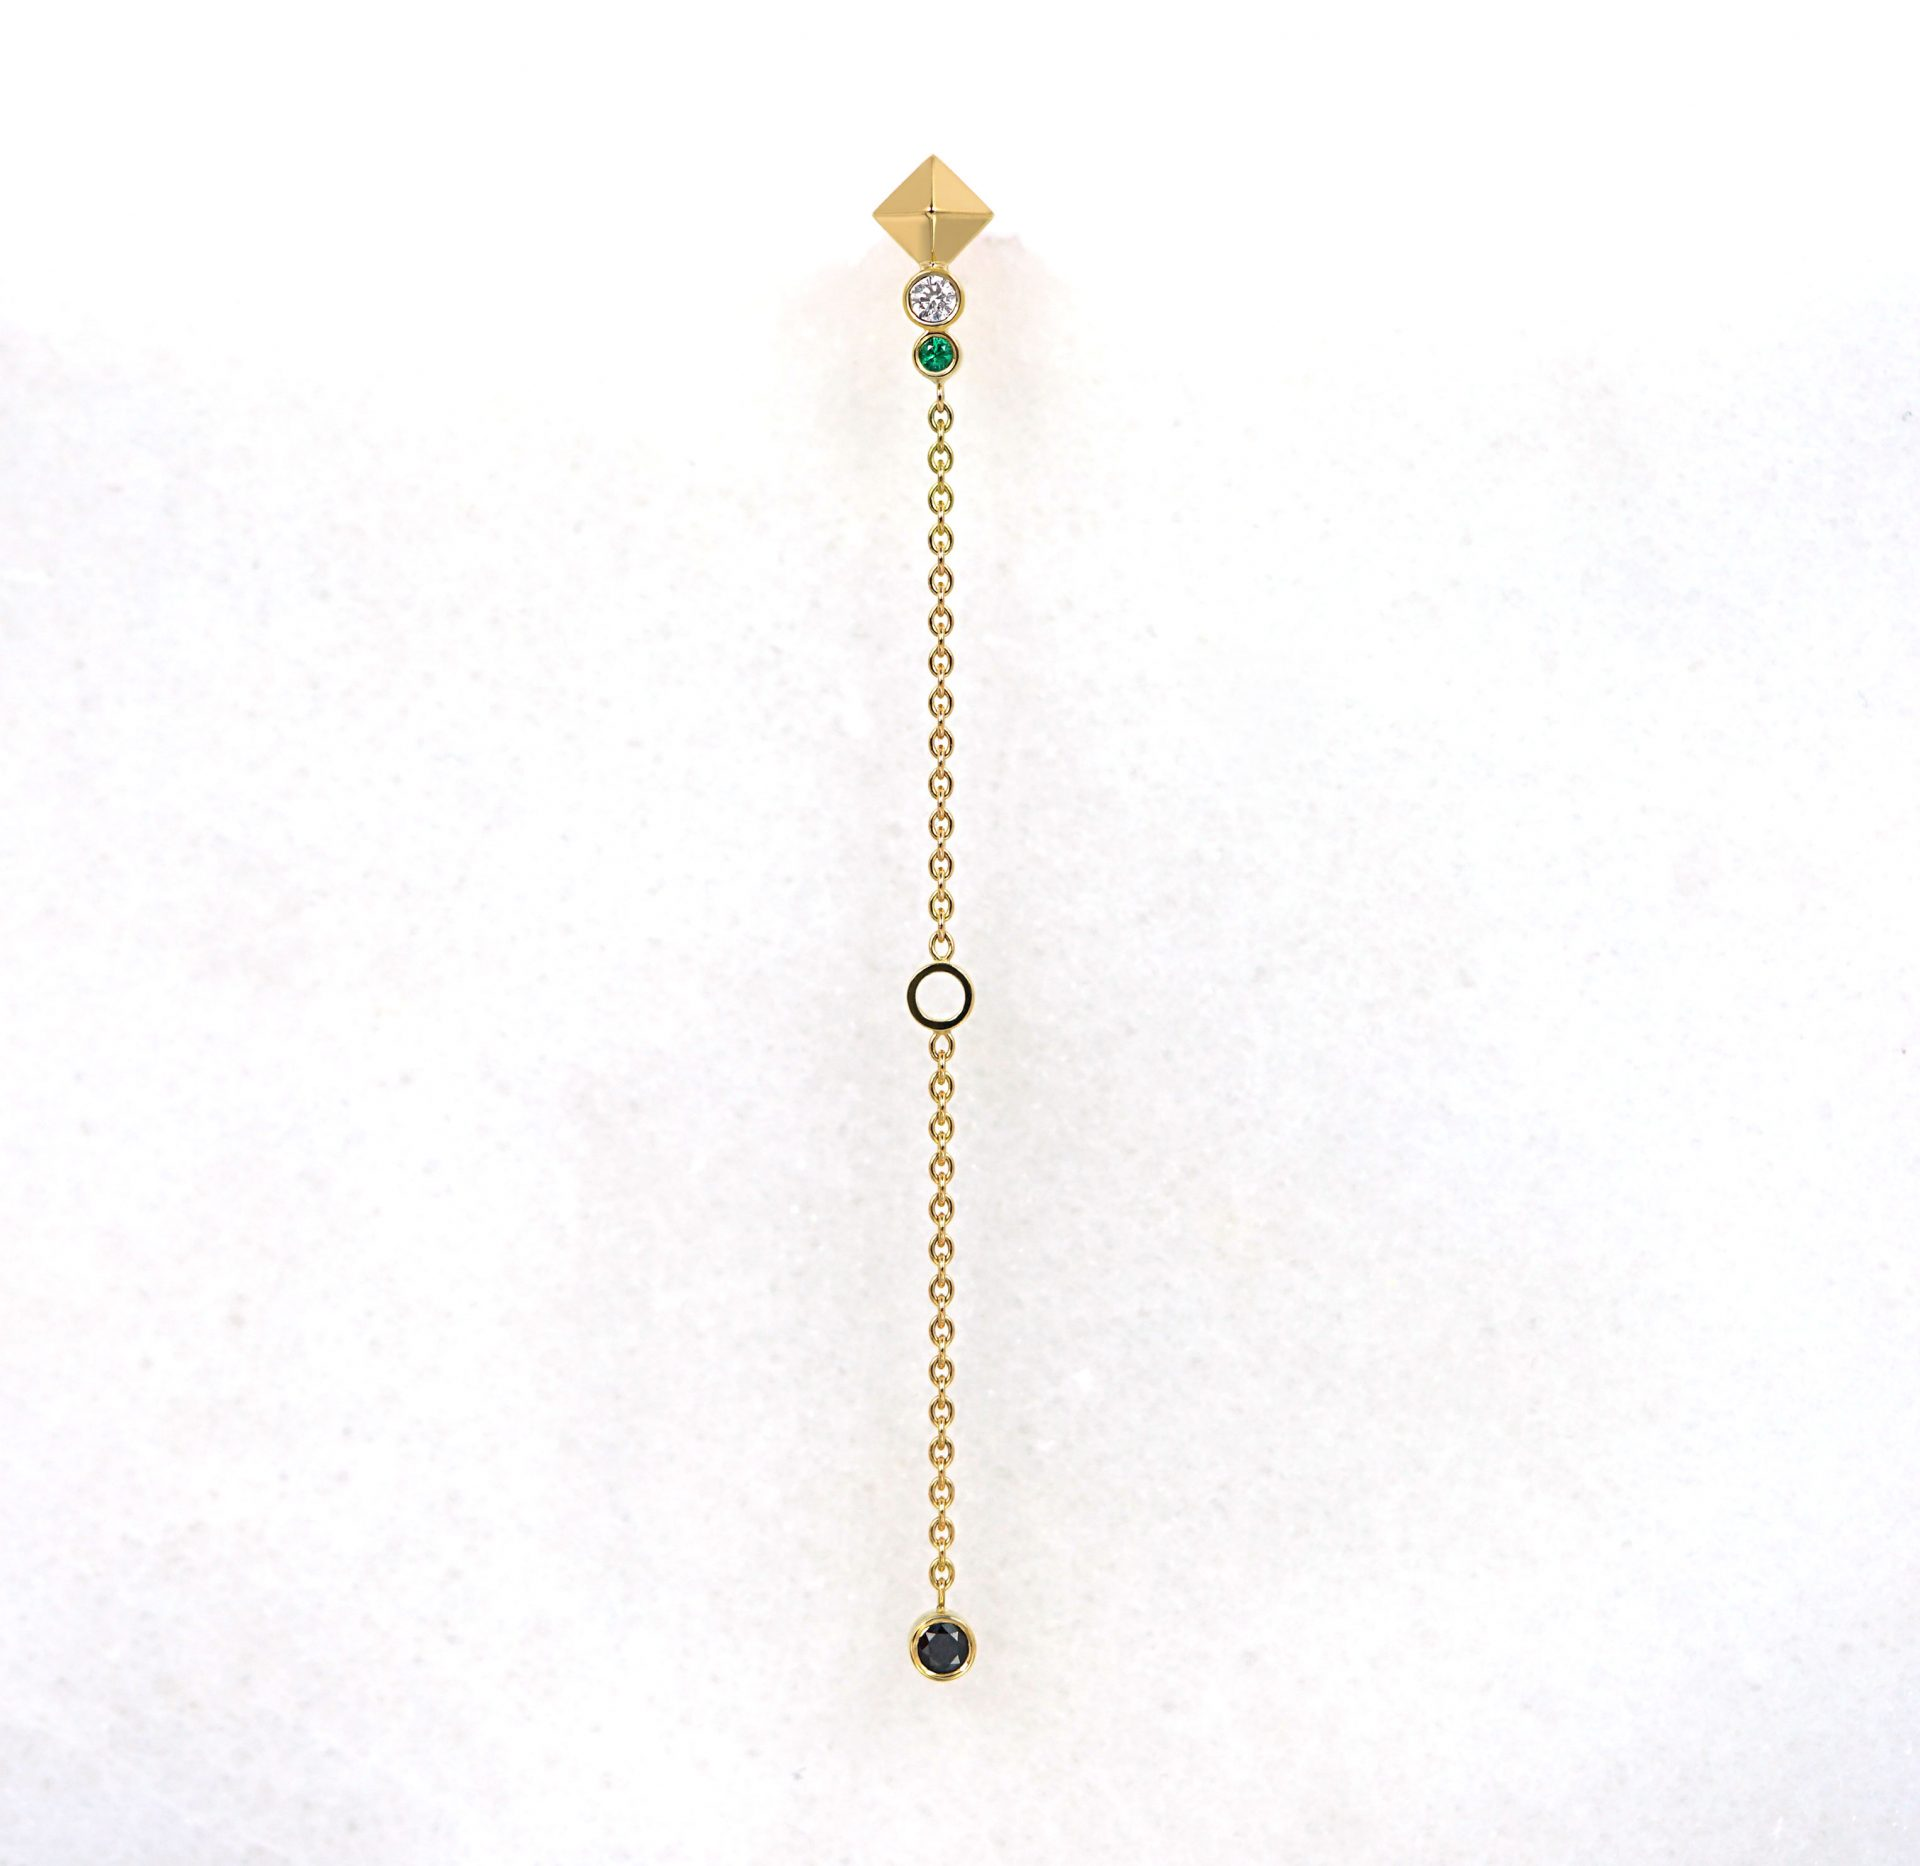 capricorn-18k-solid-yellow-gold-earring